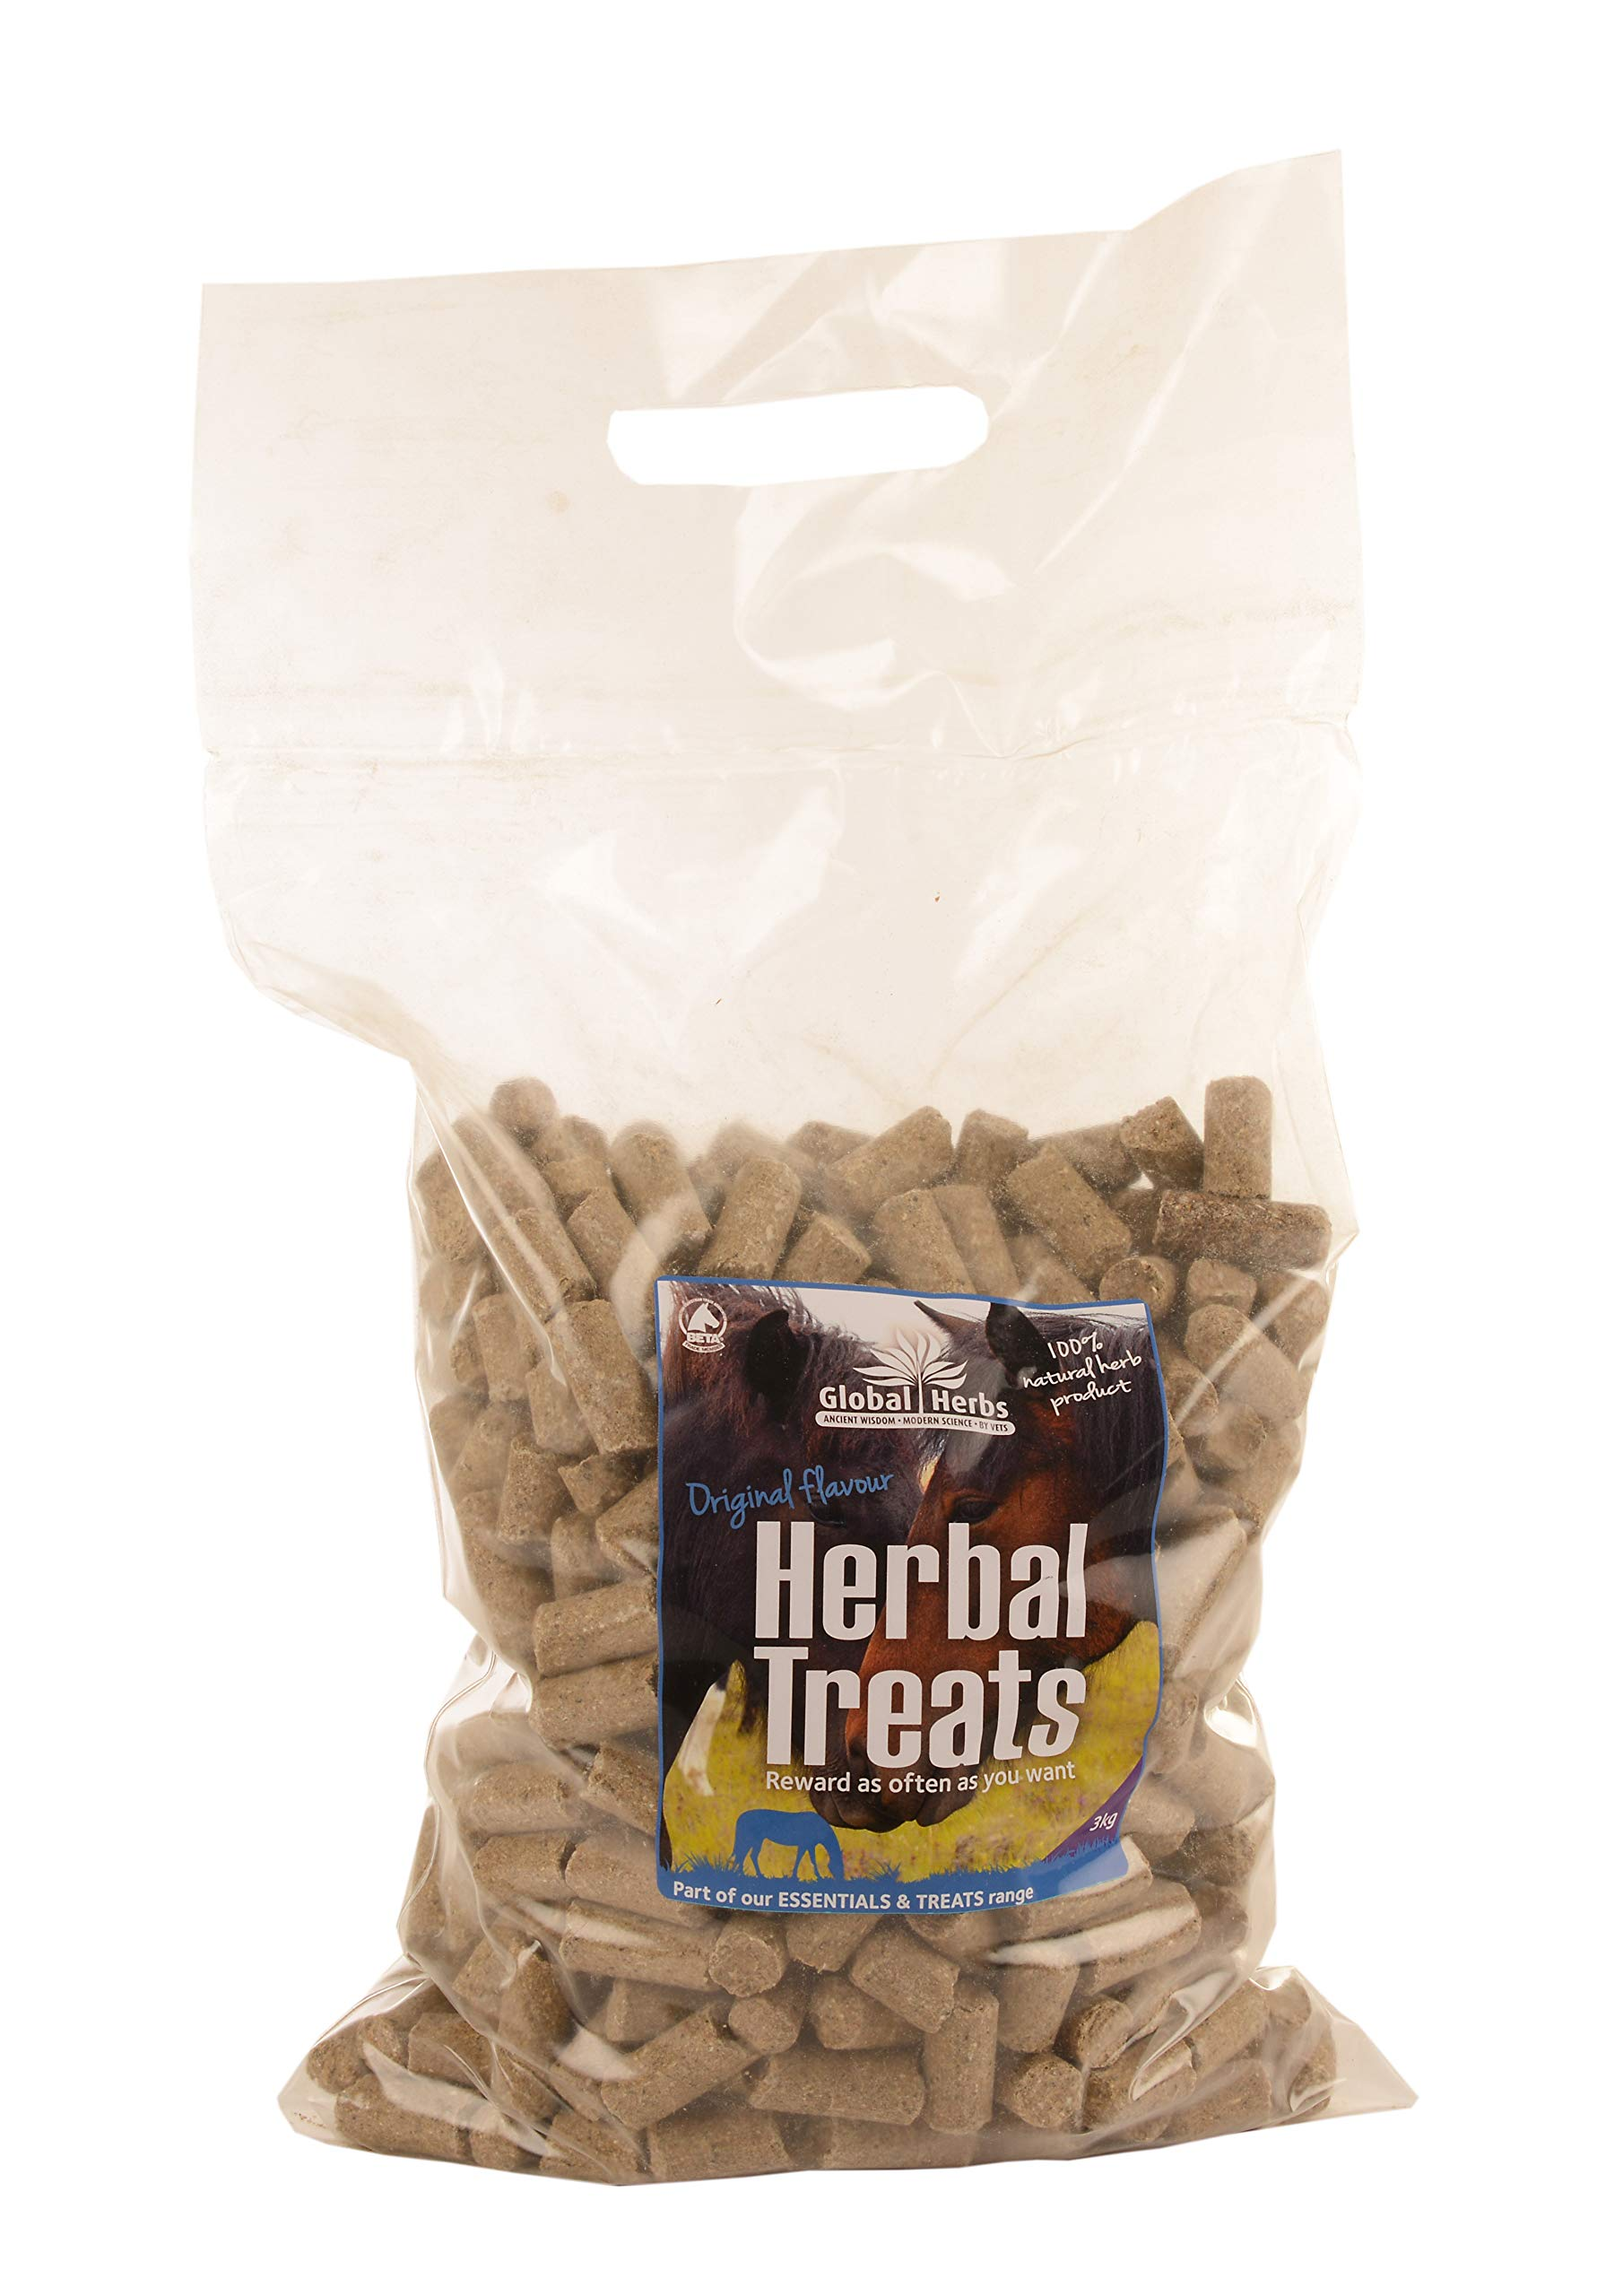 Global Herbs Herbal Treats 3kg by 3L Global Herbs